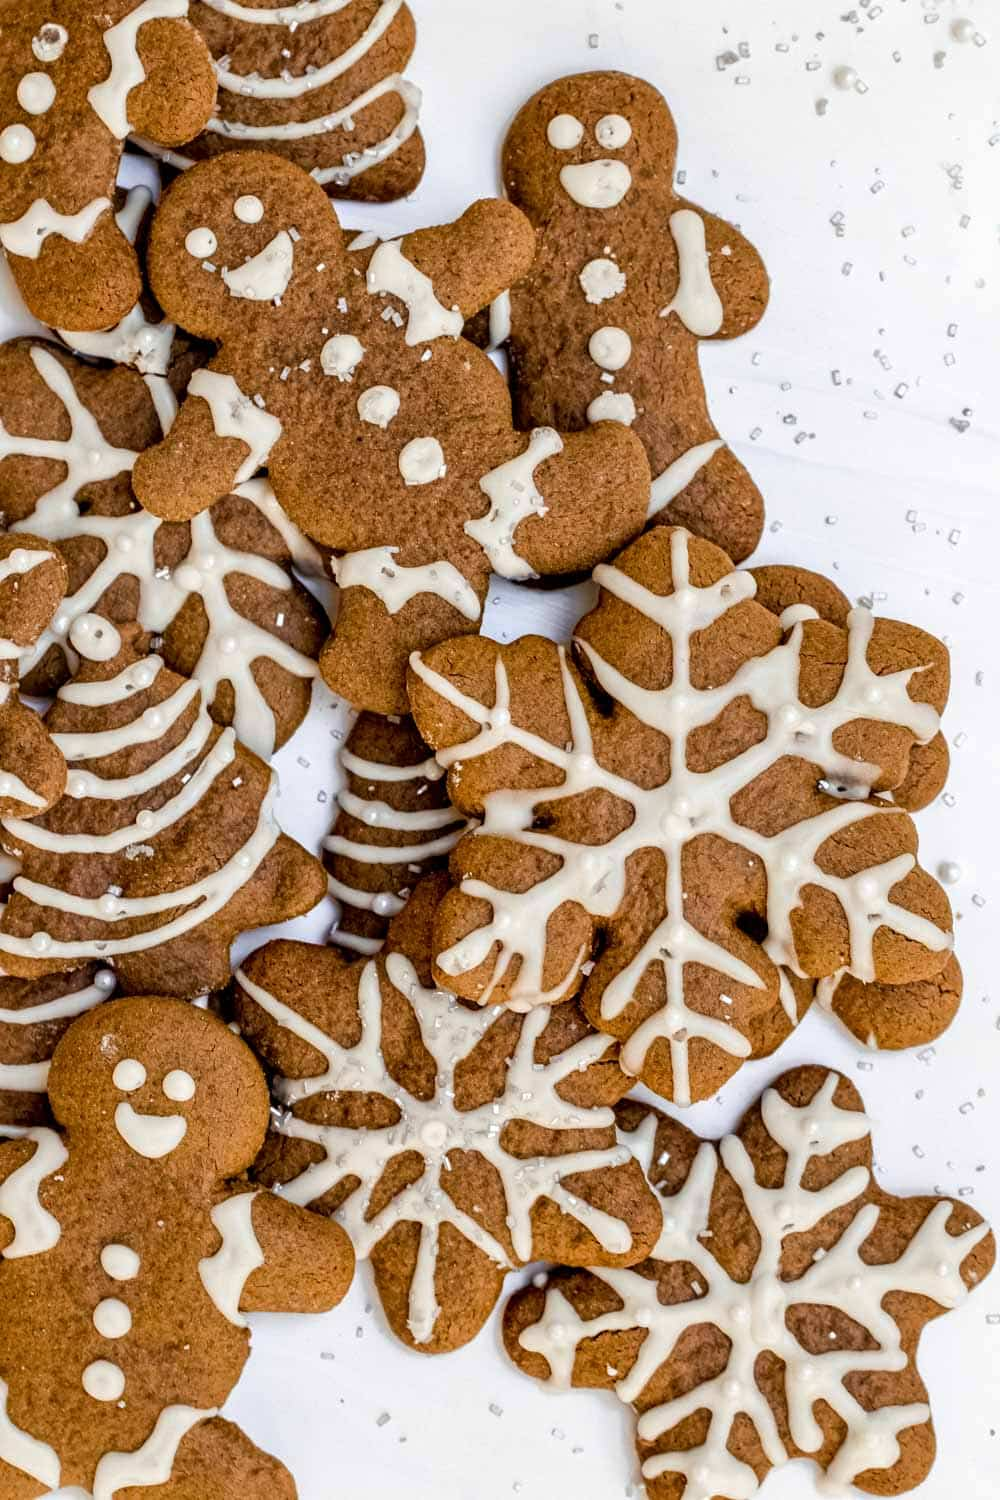 Vegan gingerbread cookies with royal icing.